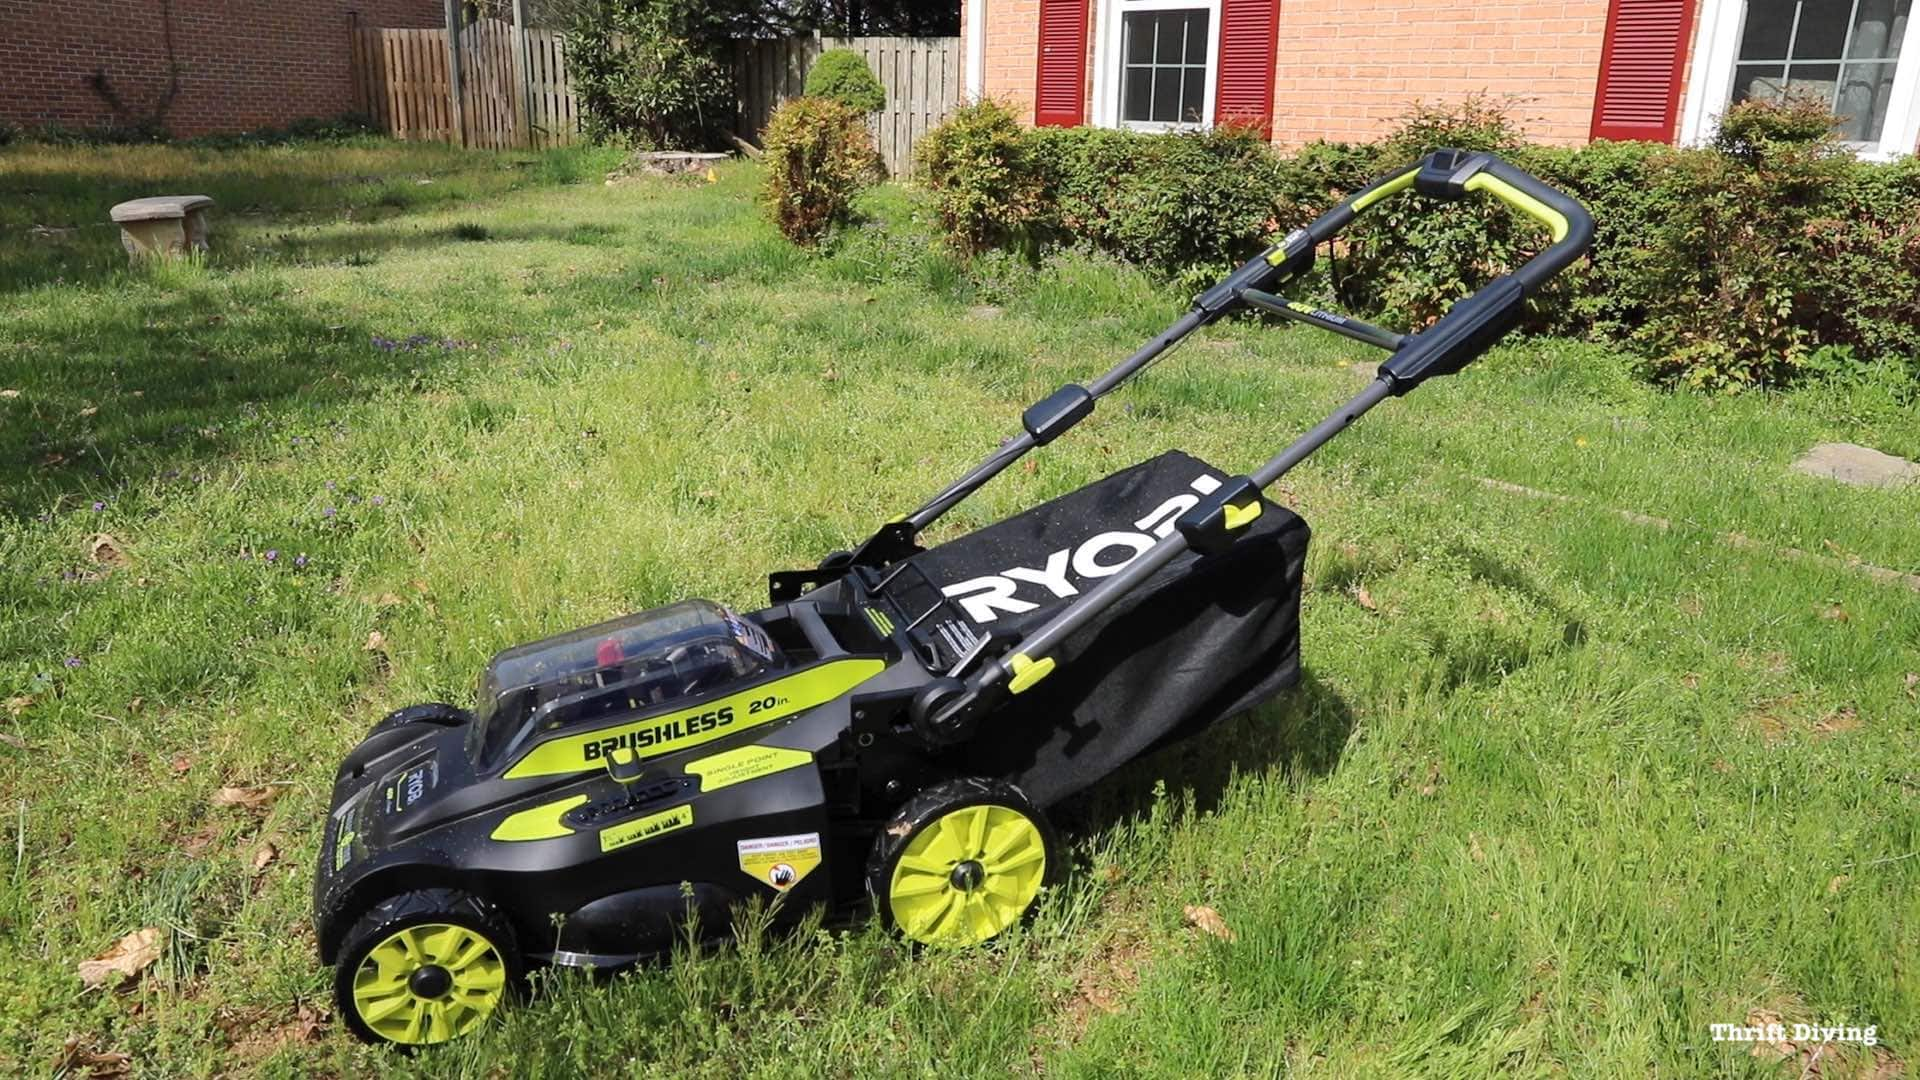 Electric Lawn Mower Sale Ryobi Lawn Mower 5 Reasons To Get This Electric Lawn Mower For